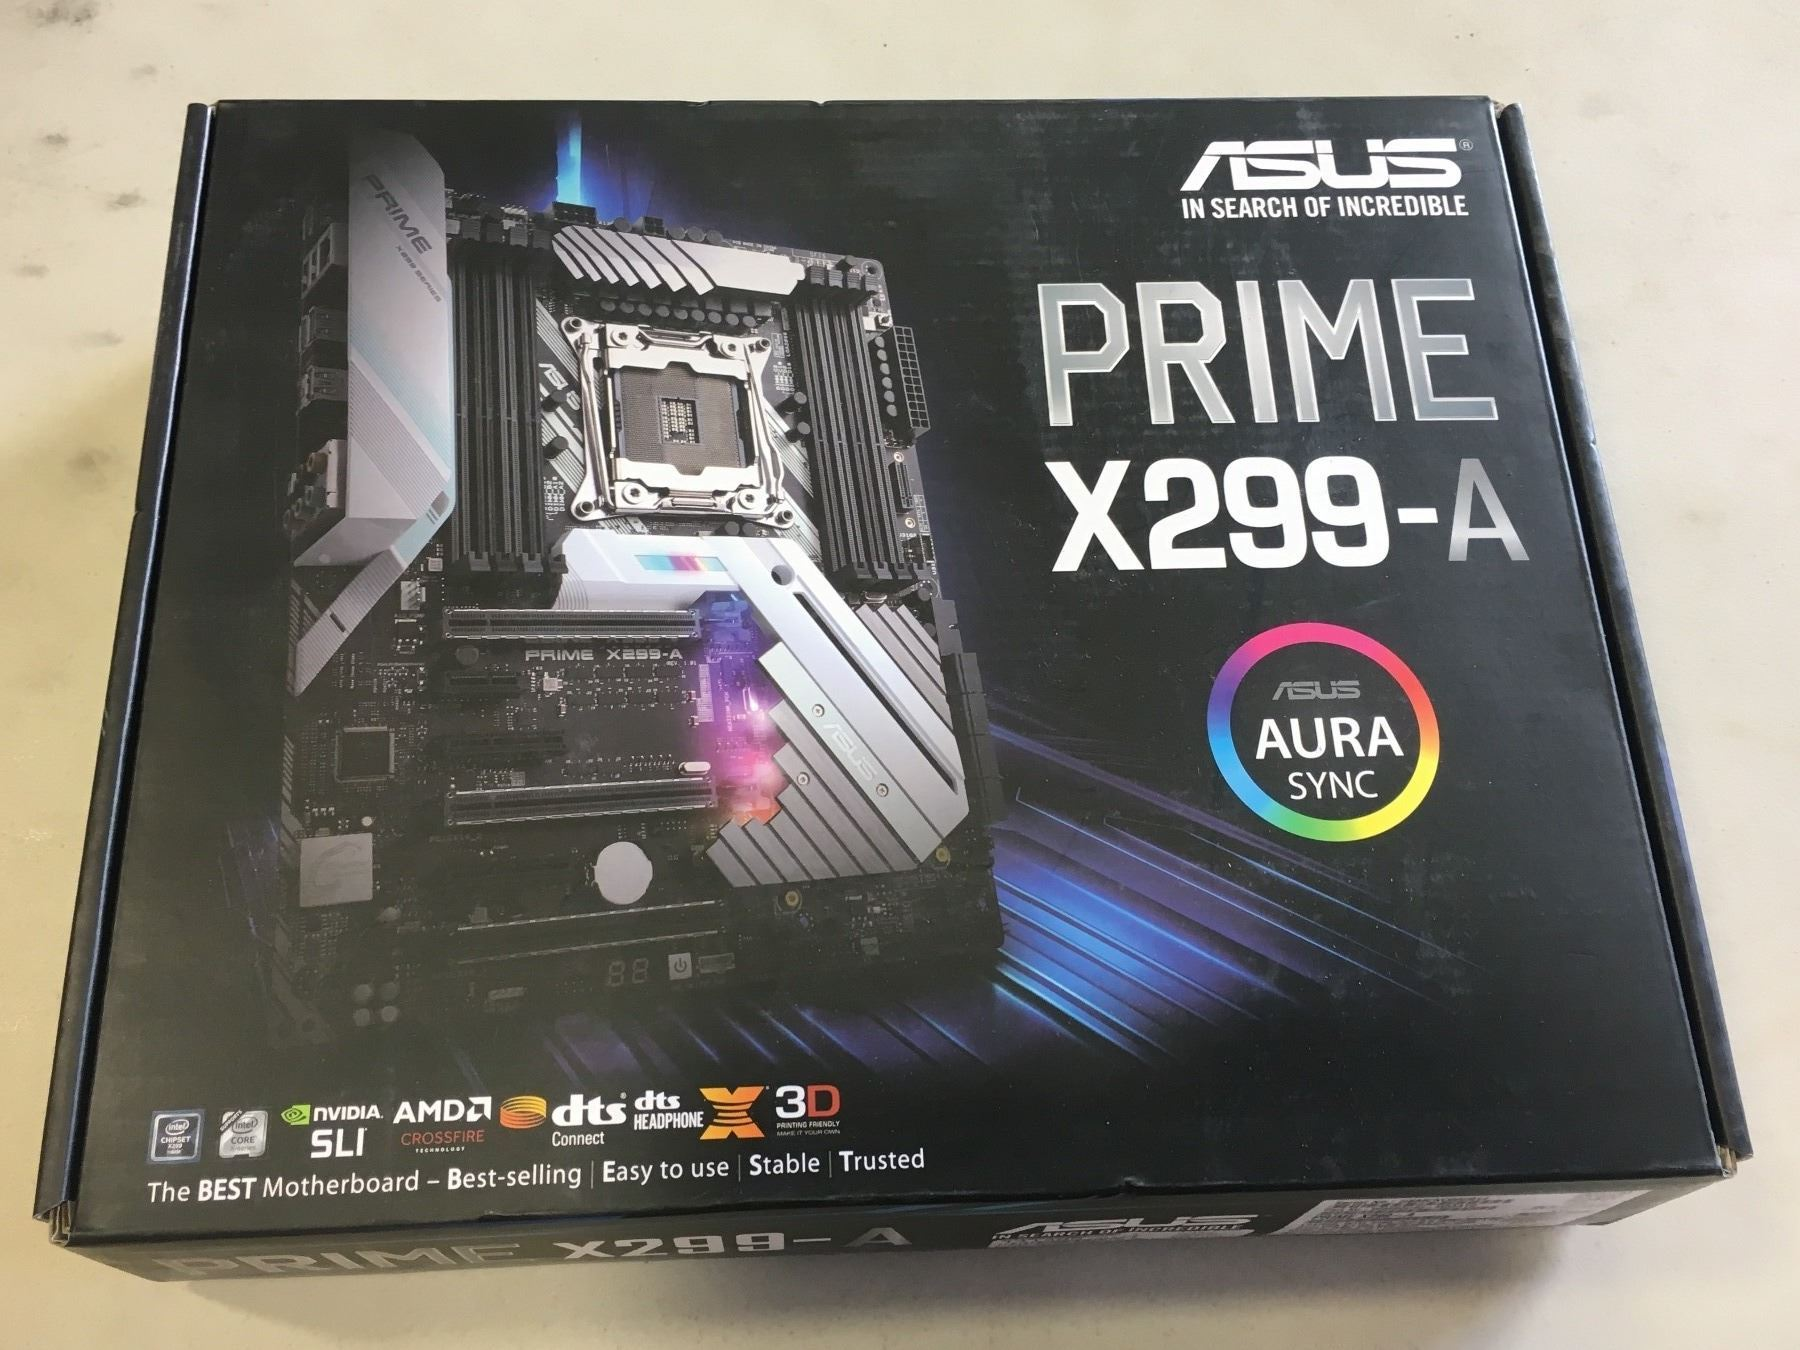 ASUS PRIME X299-A MOTHERBOARD WITH AURA SYNC